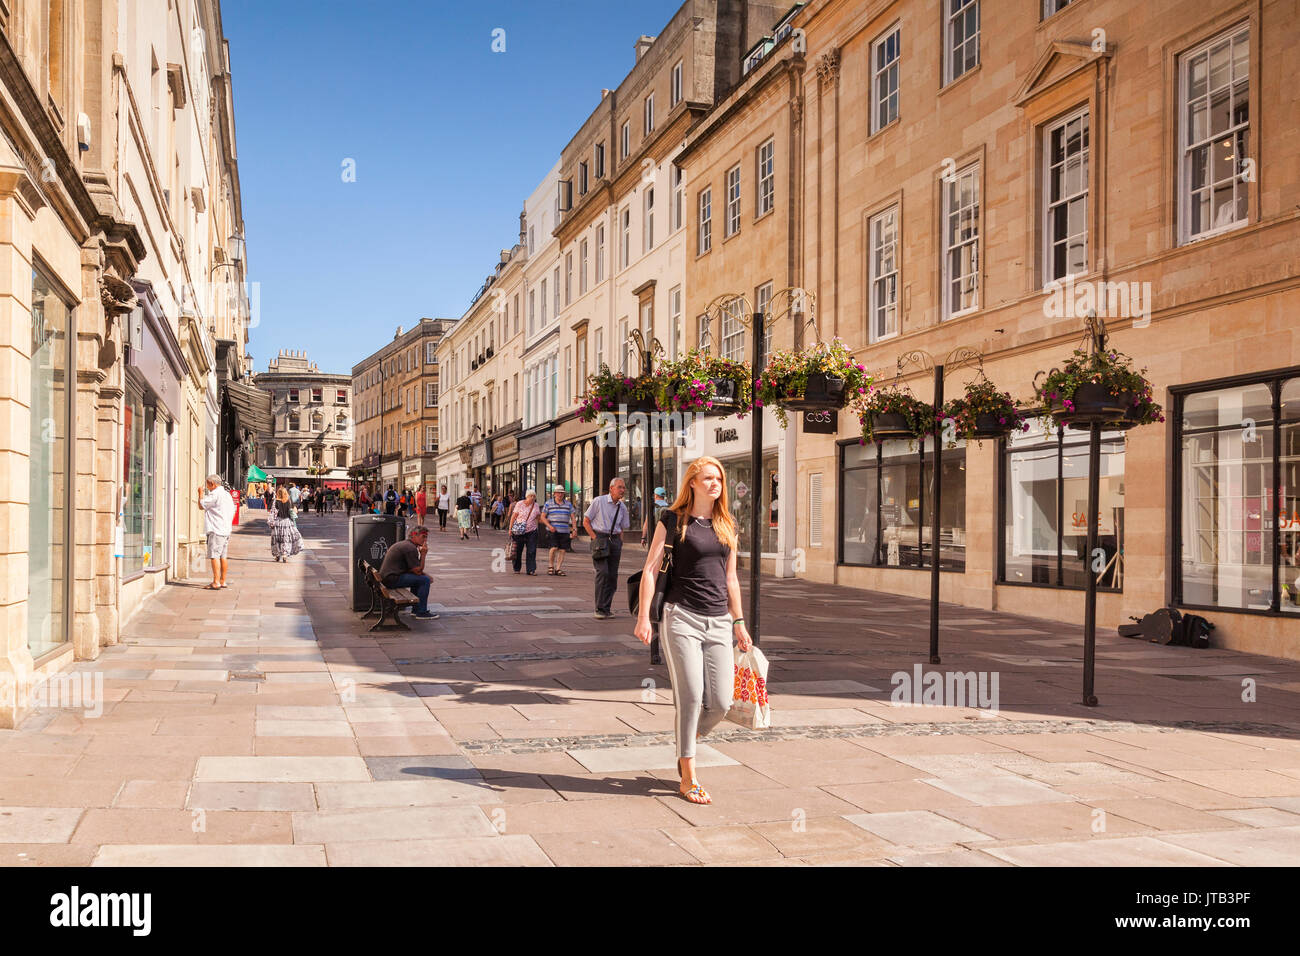 5 July 2017: Bath, Somerset, England, UK - Shopping in Union Street, in the city centre, on a beautiful summer day. - Stock Image